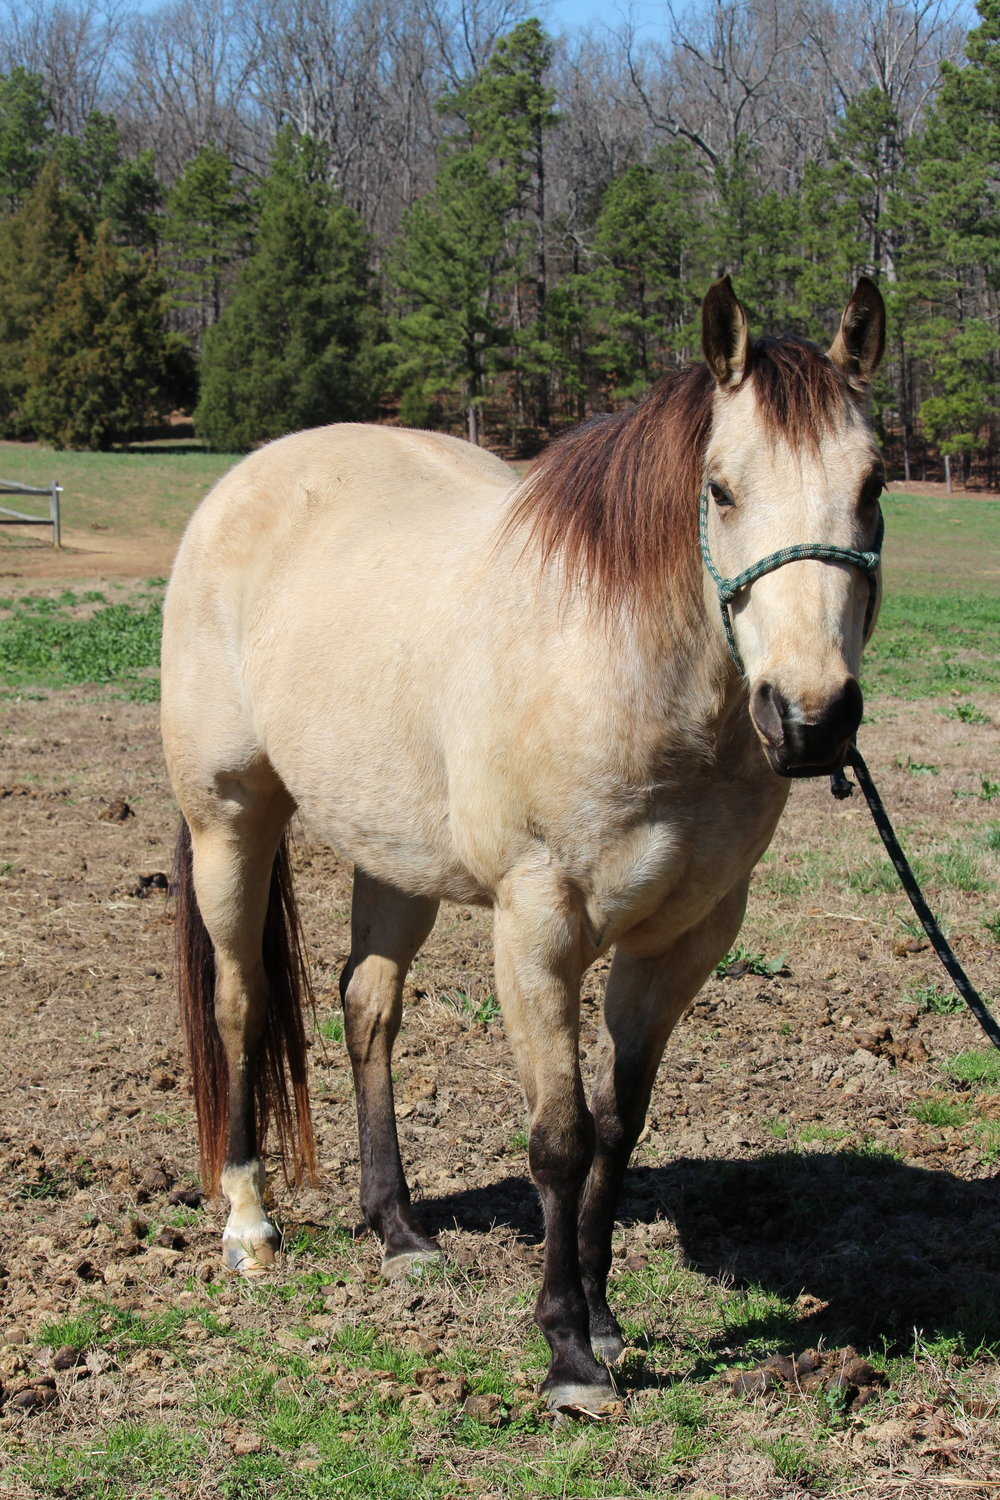 Tacha - Tacha is a 10-year-old Quarter Horse gelding who is kindly free leased to us by Mr. Stephen Smith. He has a sweet temperament, but sometimes likes to be pushy and will test you. Tacha is occasionally used in the program, but is mostly ridden by our independent riders.